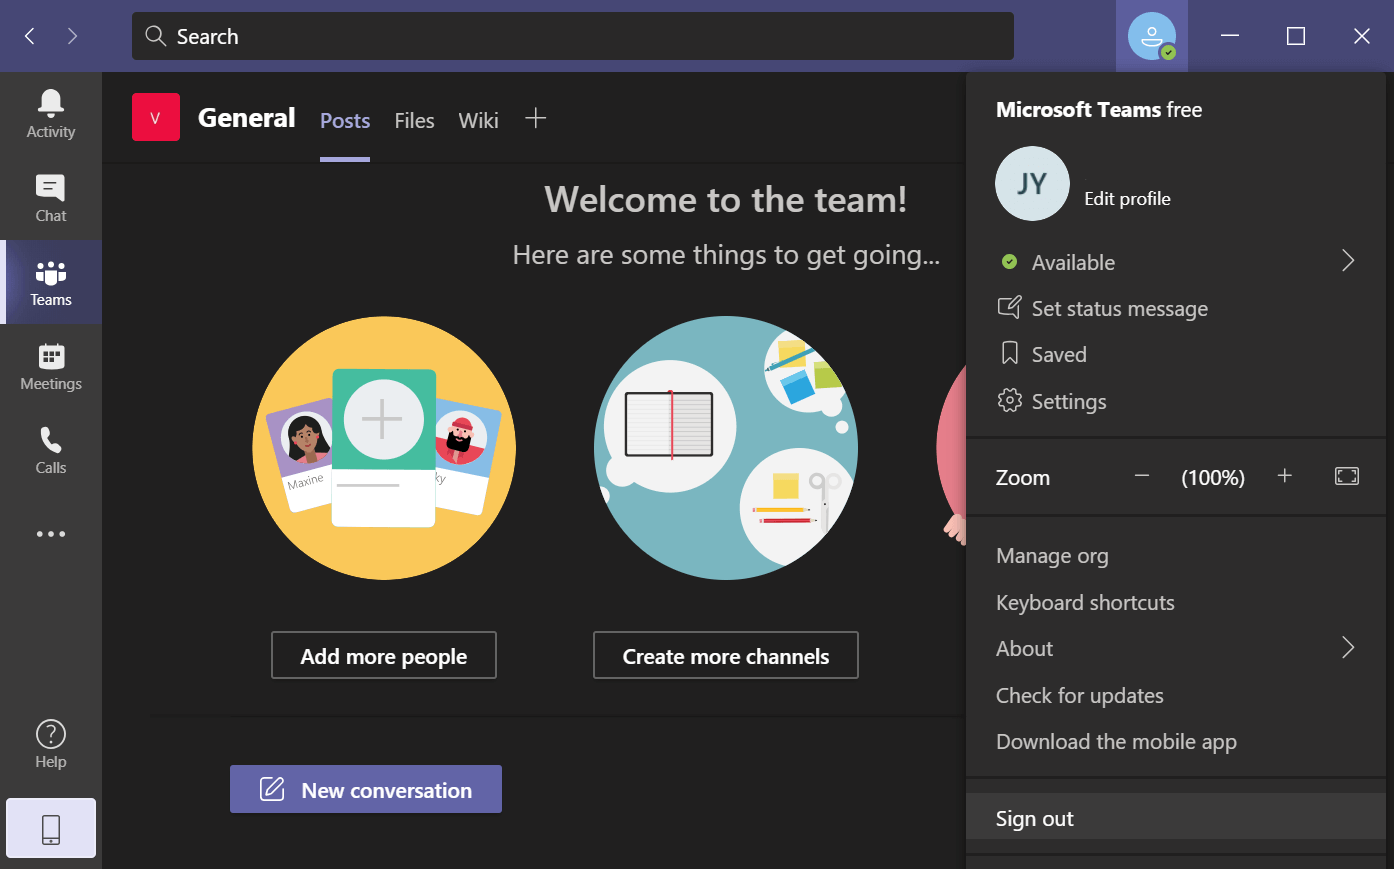 fix cant load images in microsoft teams chat